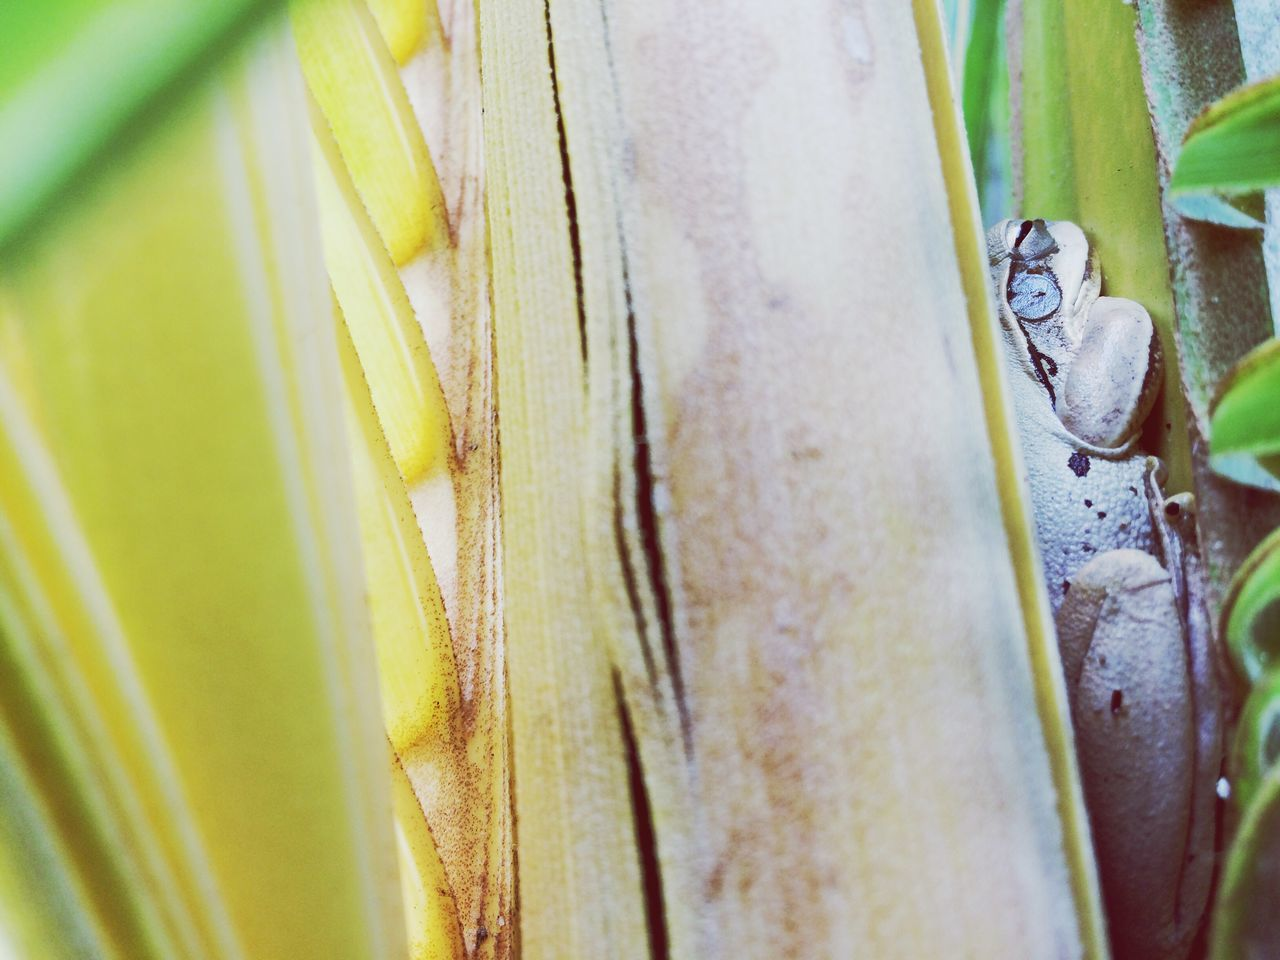 close-up, no people, selective focus, day, plant, backgrounds, animals in the wild, outdoors, animal themes, nature